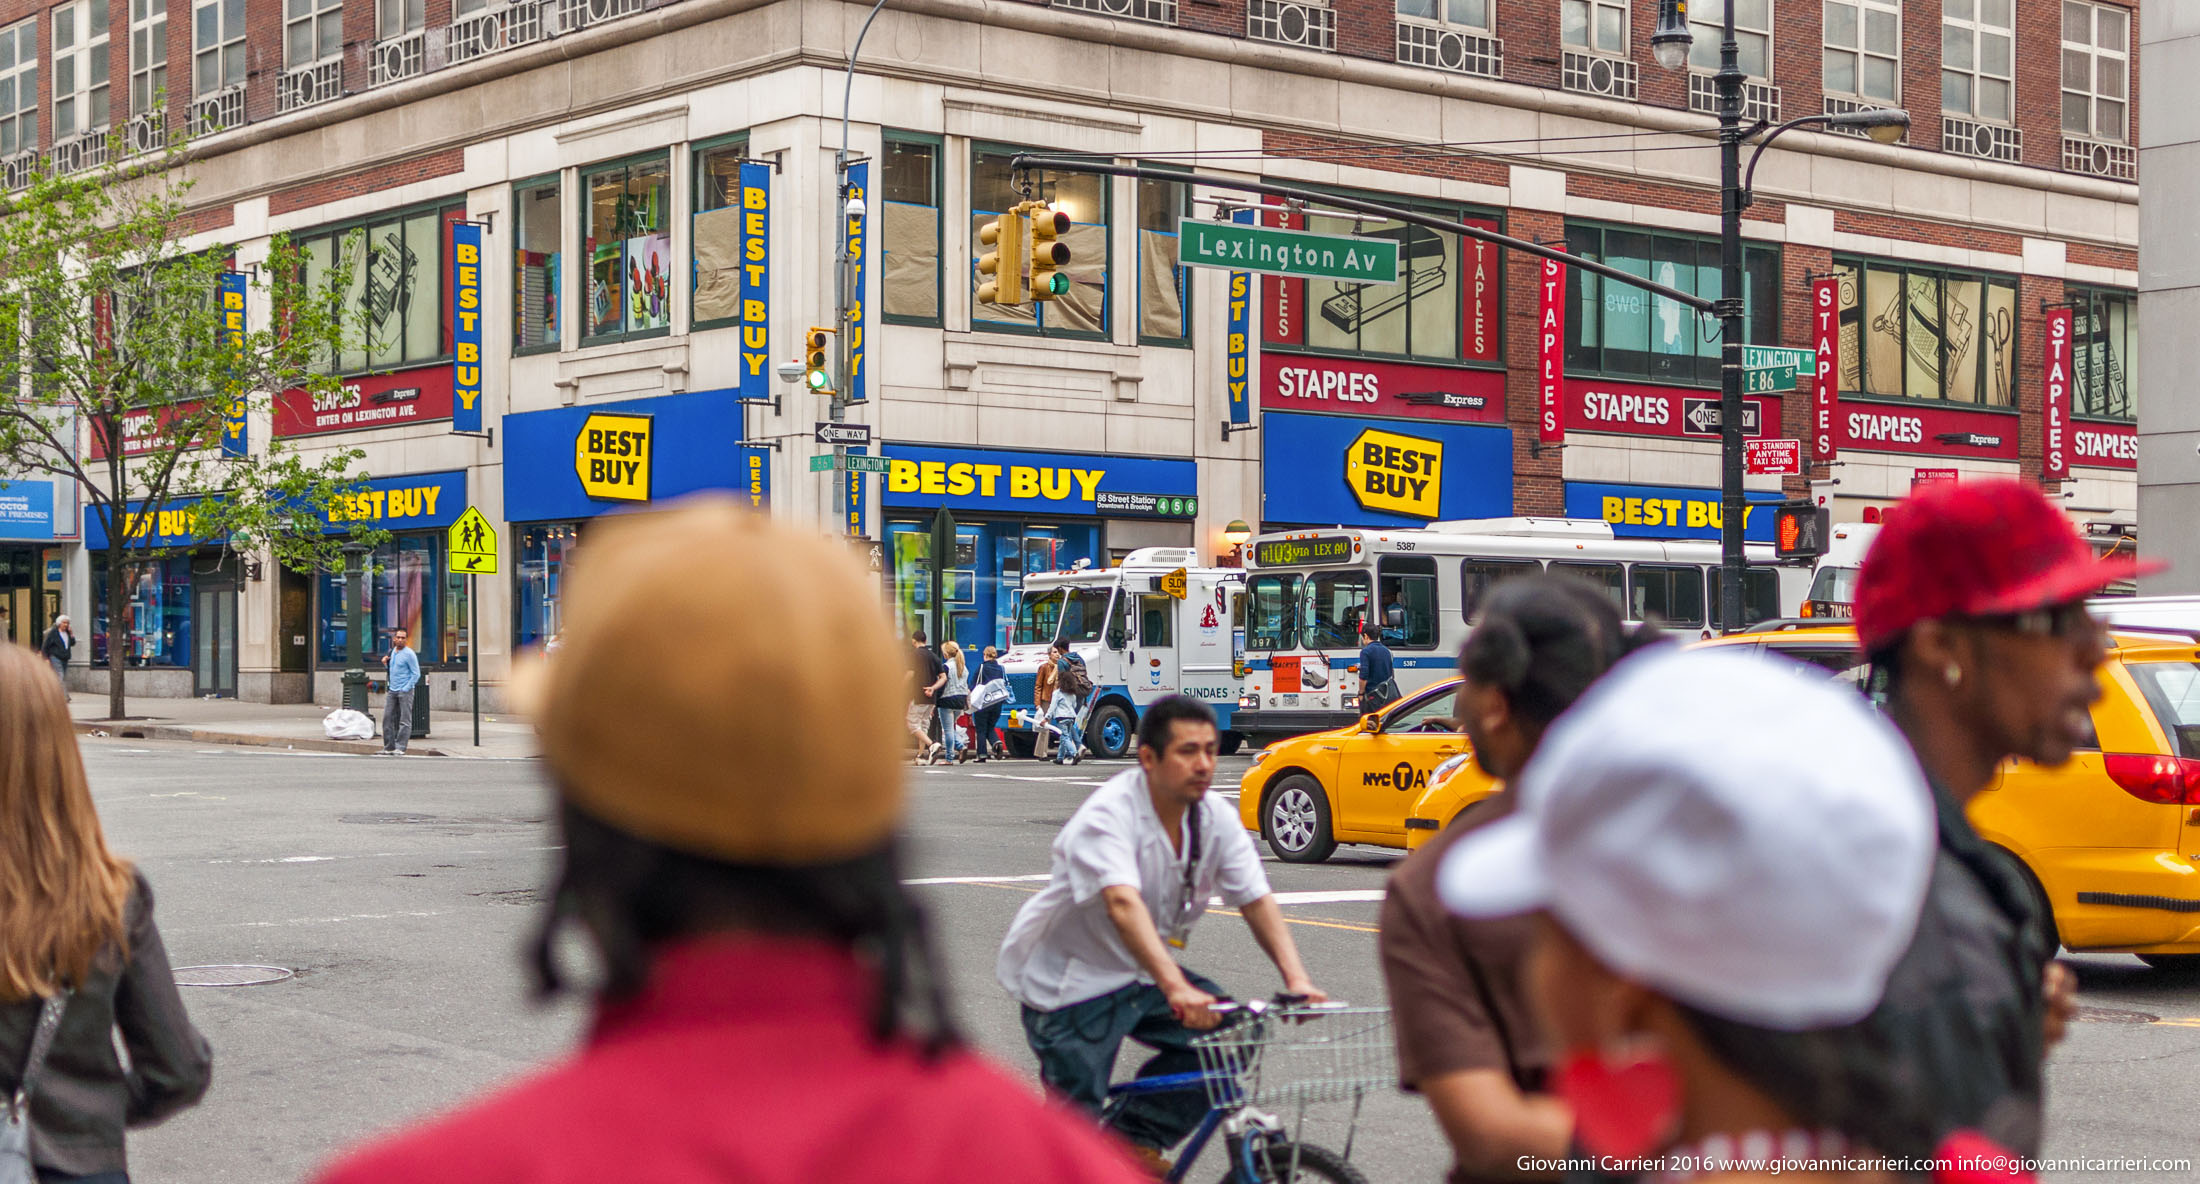 La Lexington Avenue ed i Suoi Negozi Best Buy